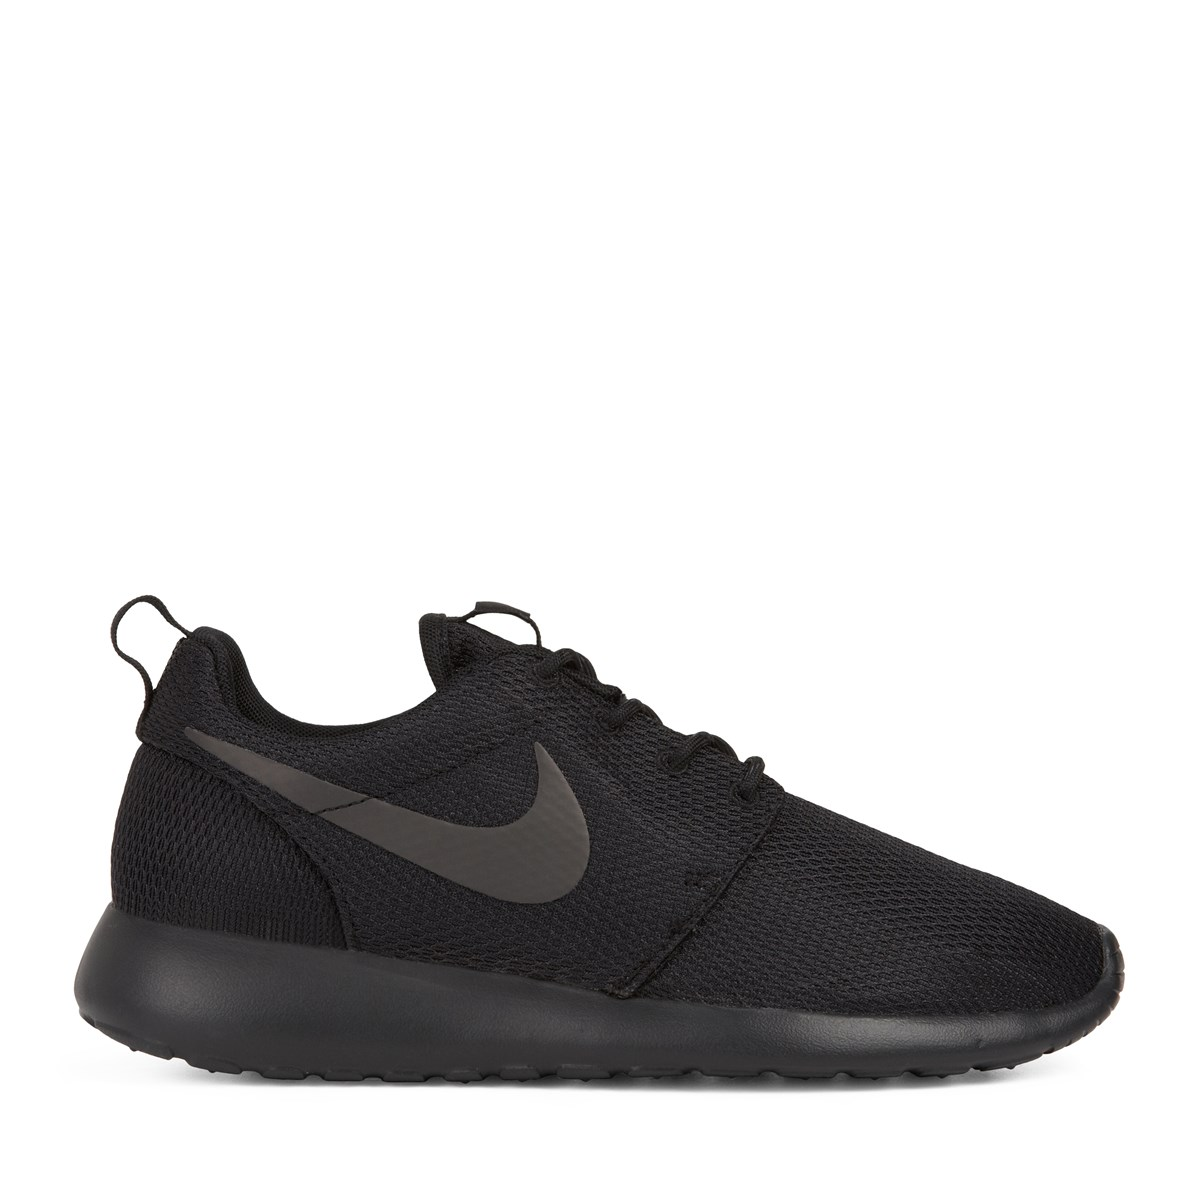 women 39 s roshe one all black sneaker little burgundy. Black Bedroom Furniture Sets. Home Design Ideas